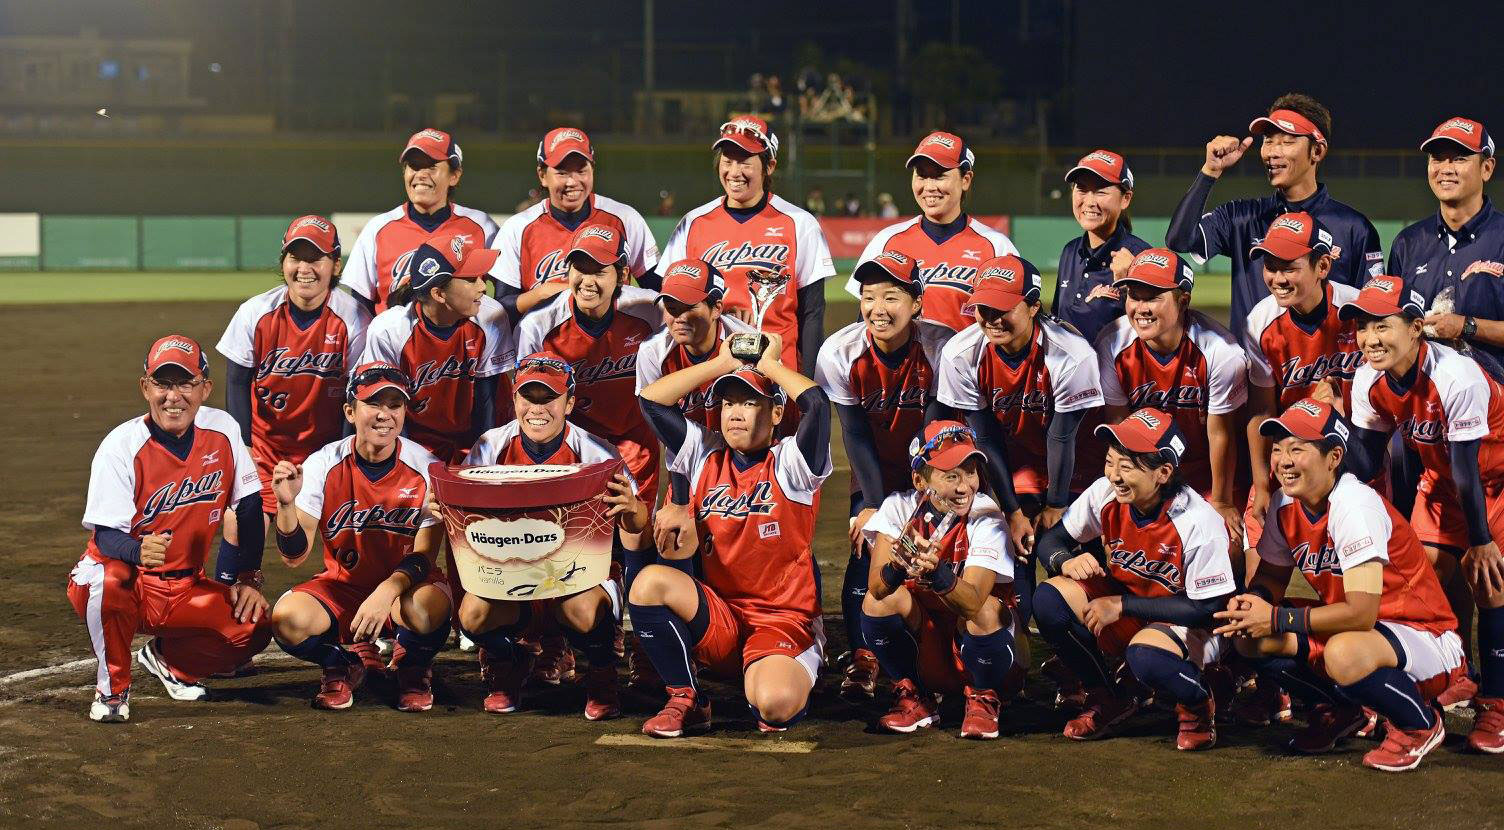 Japan wins Softball 2016 Japan Cup with victory over USA